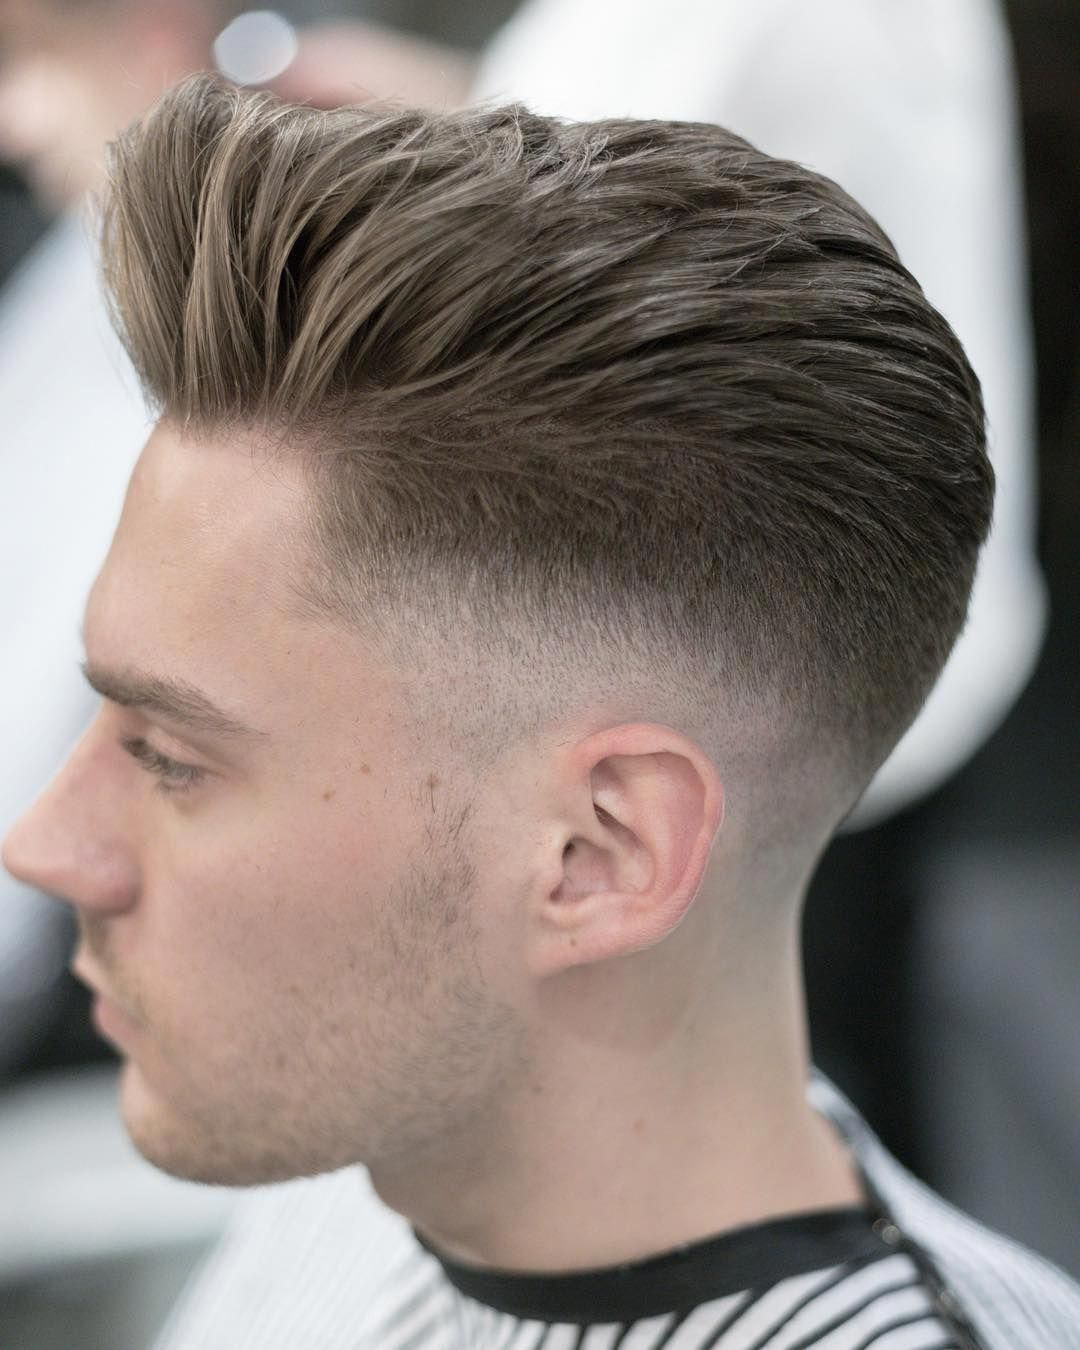 The Pomp Is A Classic Mens Hairstyle That Never Goes Out Of Style